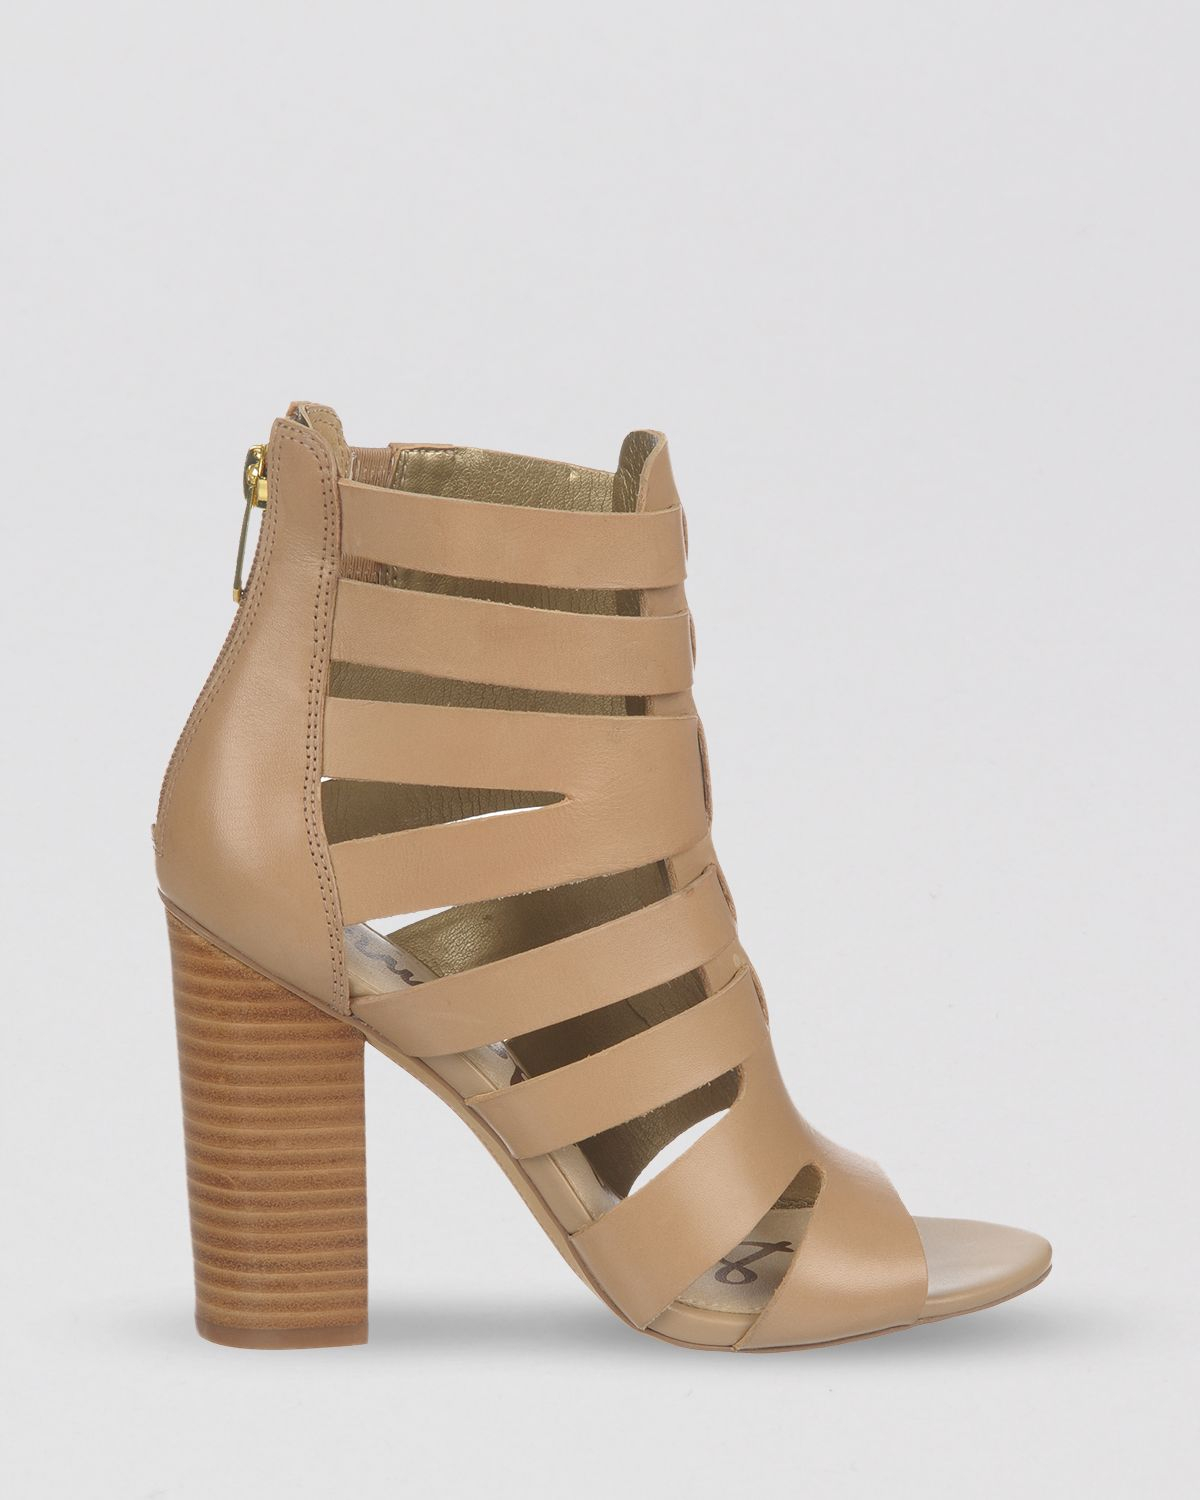 Sam Edelman Stiletto sandals 5tCQkC4